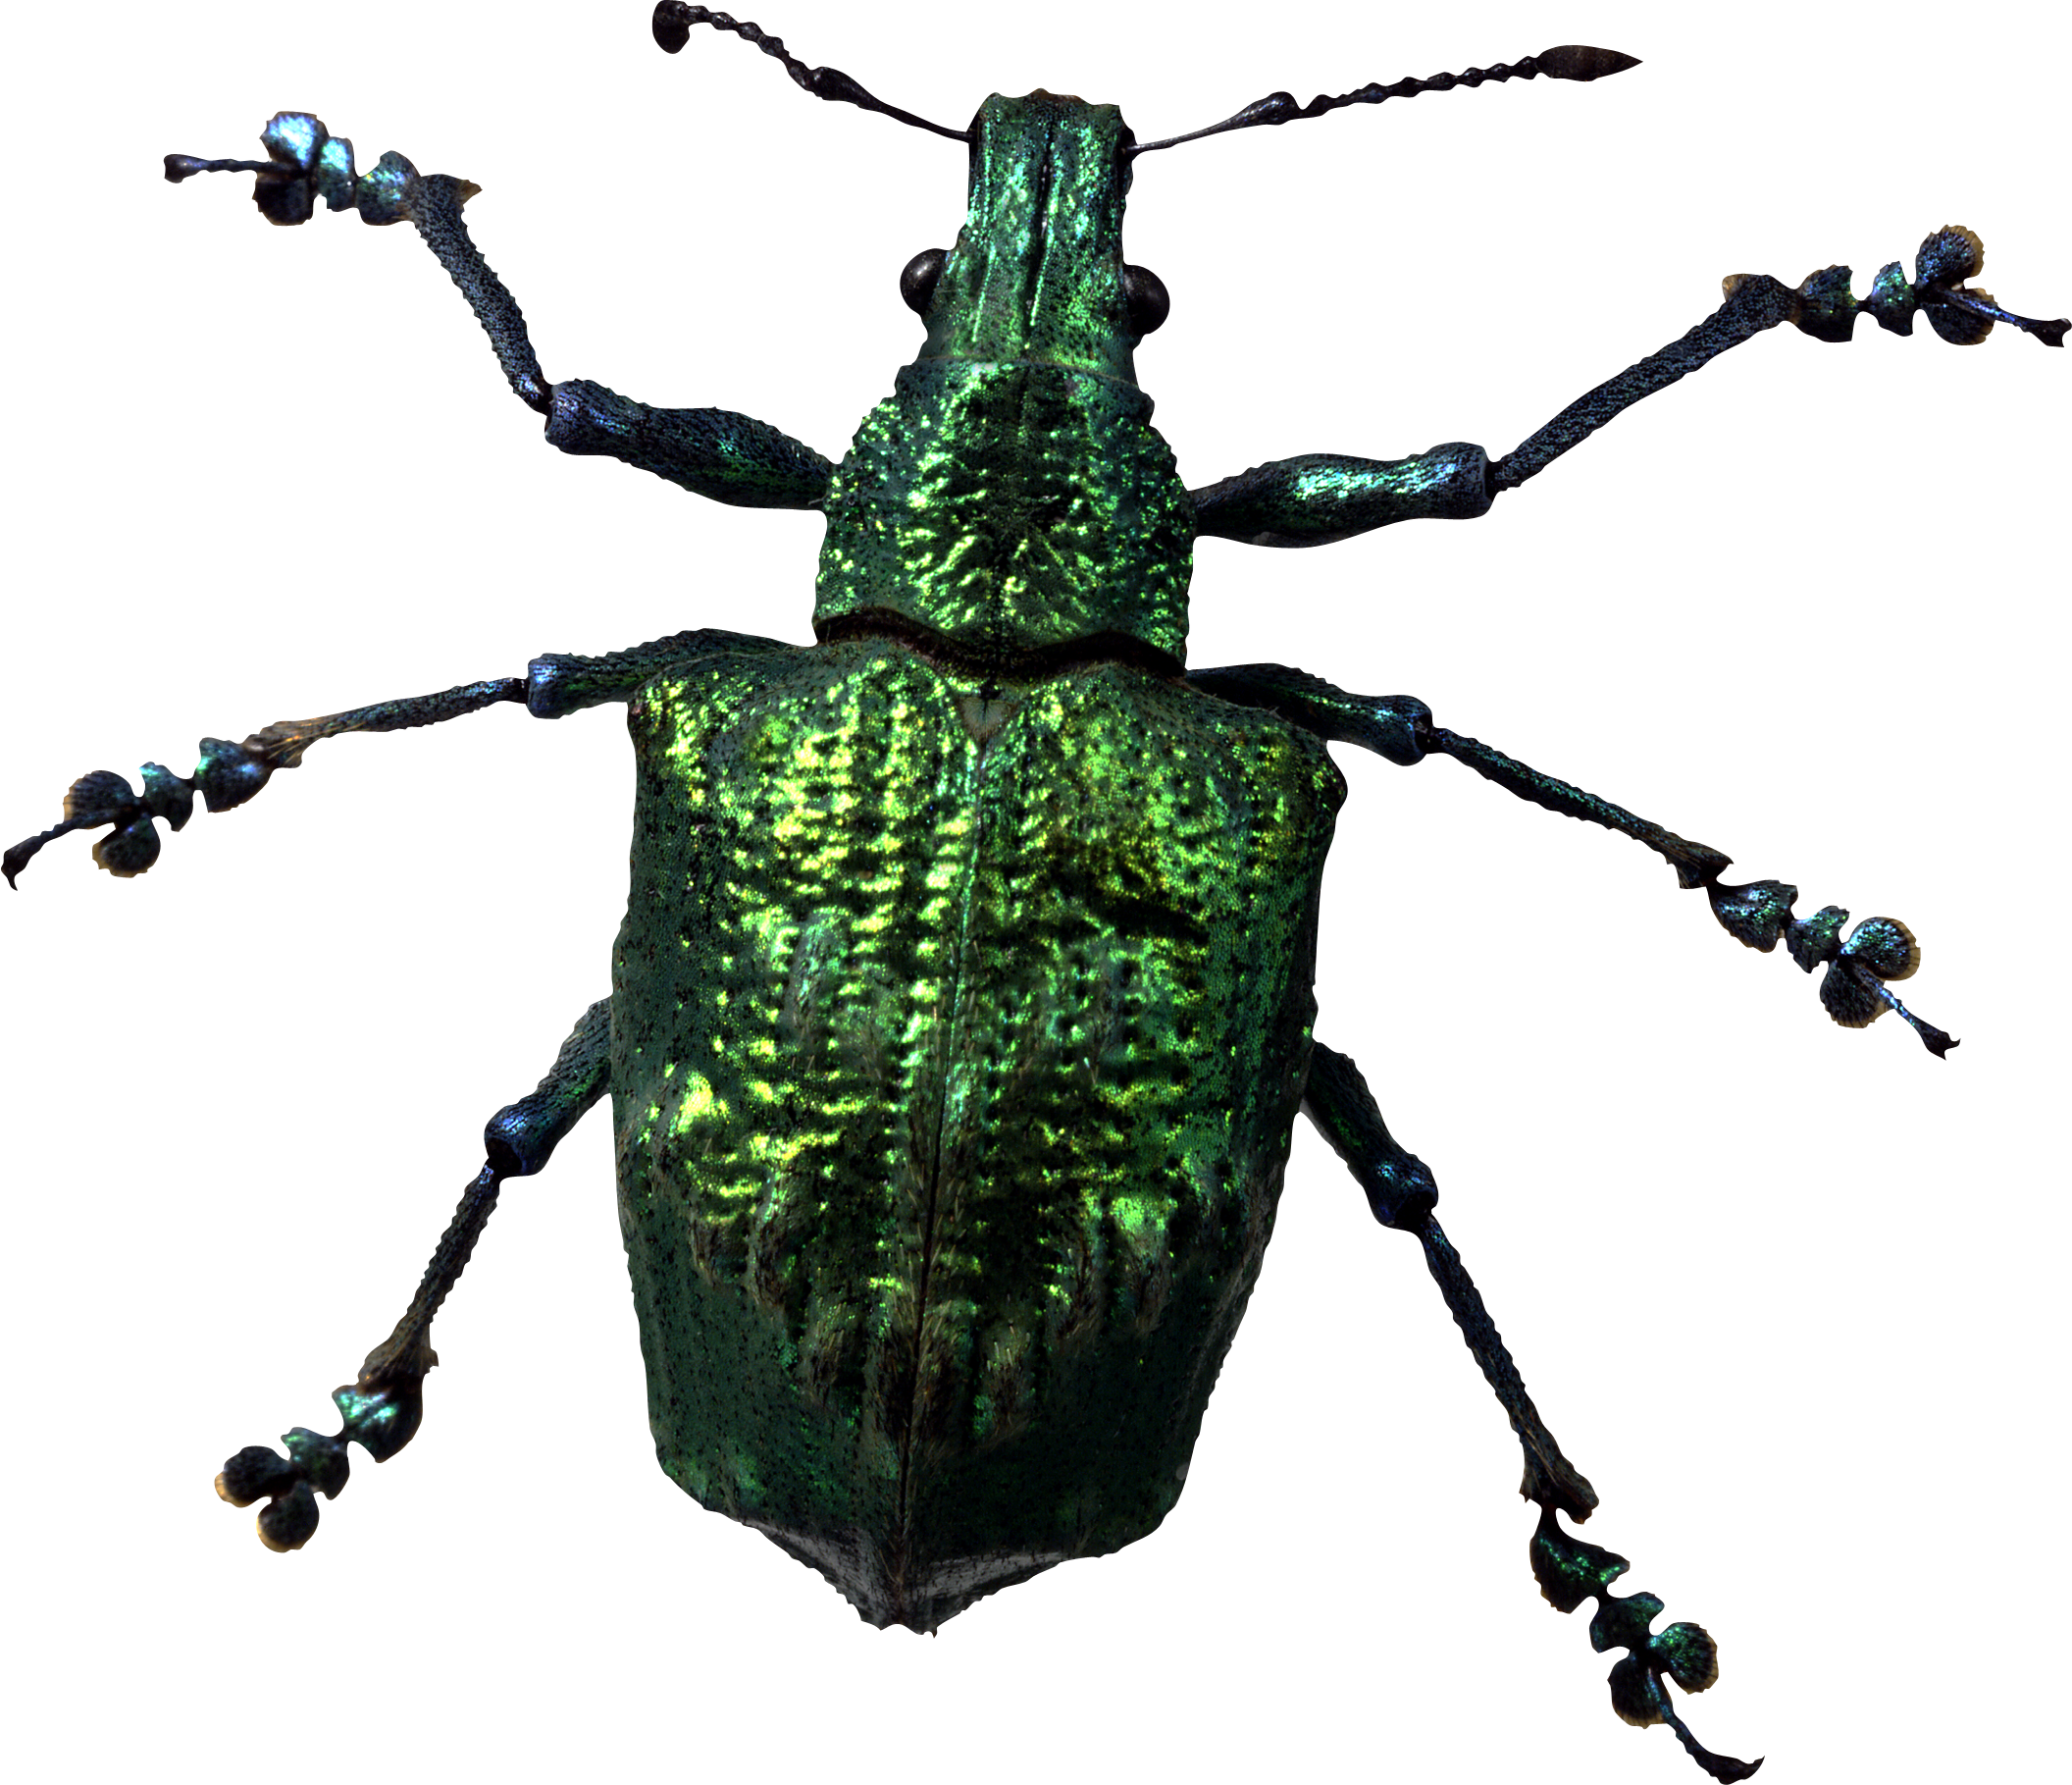 Insect Png - Insects, Transparent background PNG HD thumbnail